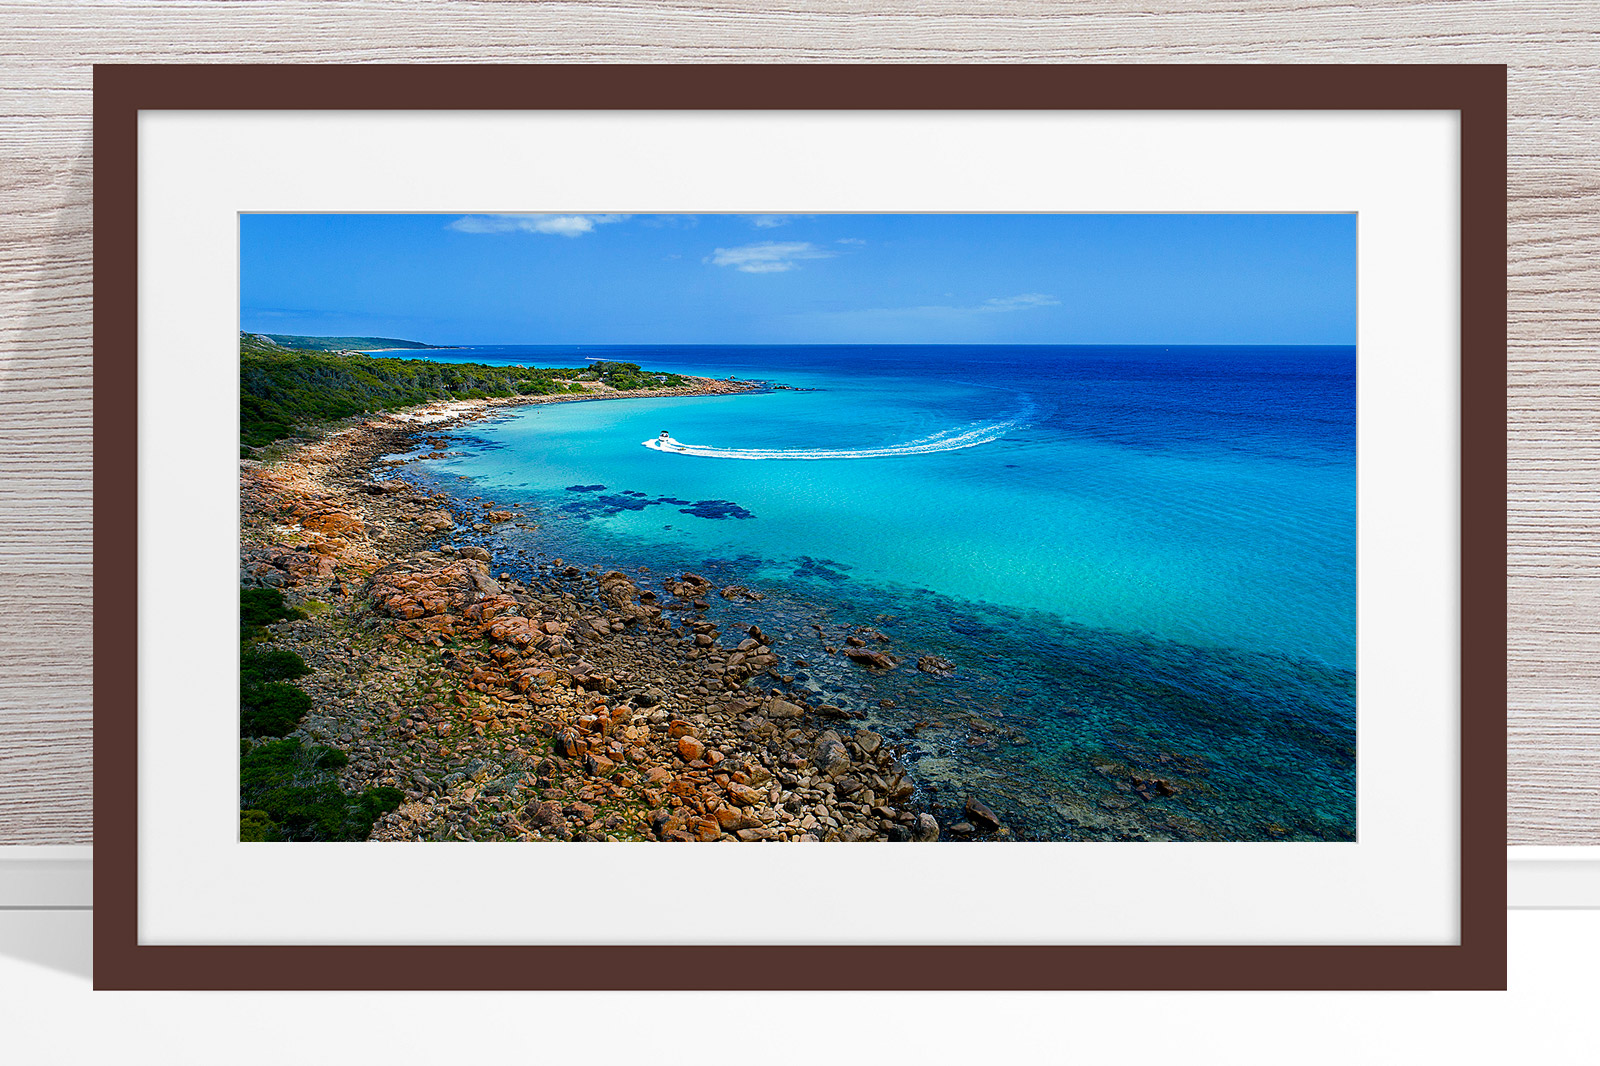 027 - Jason Mazur - 'Meelup Coastline, Dunsborough' Dark Frame